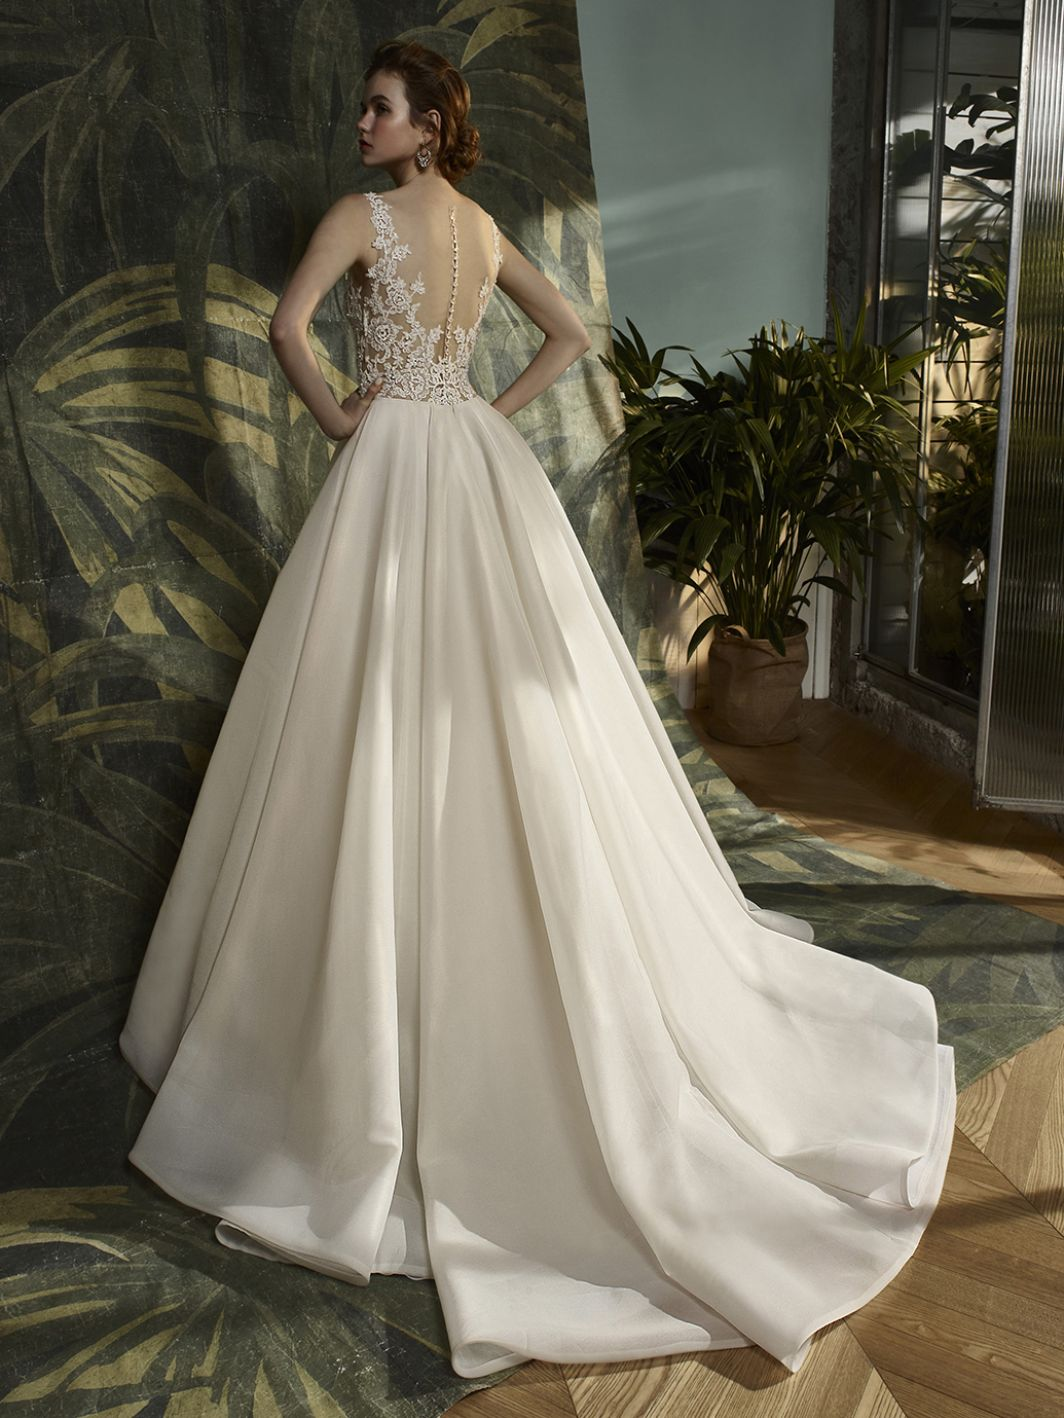 Krystal - Sample Gown, Online Sample Sale - 1800, Blue by Enzoani - Sample Gown - Eternal Bridal